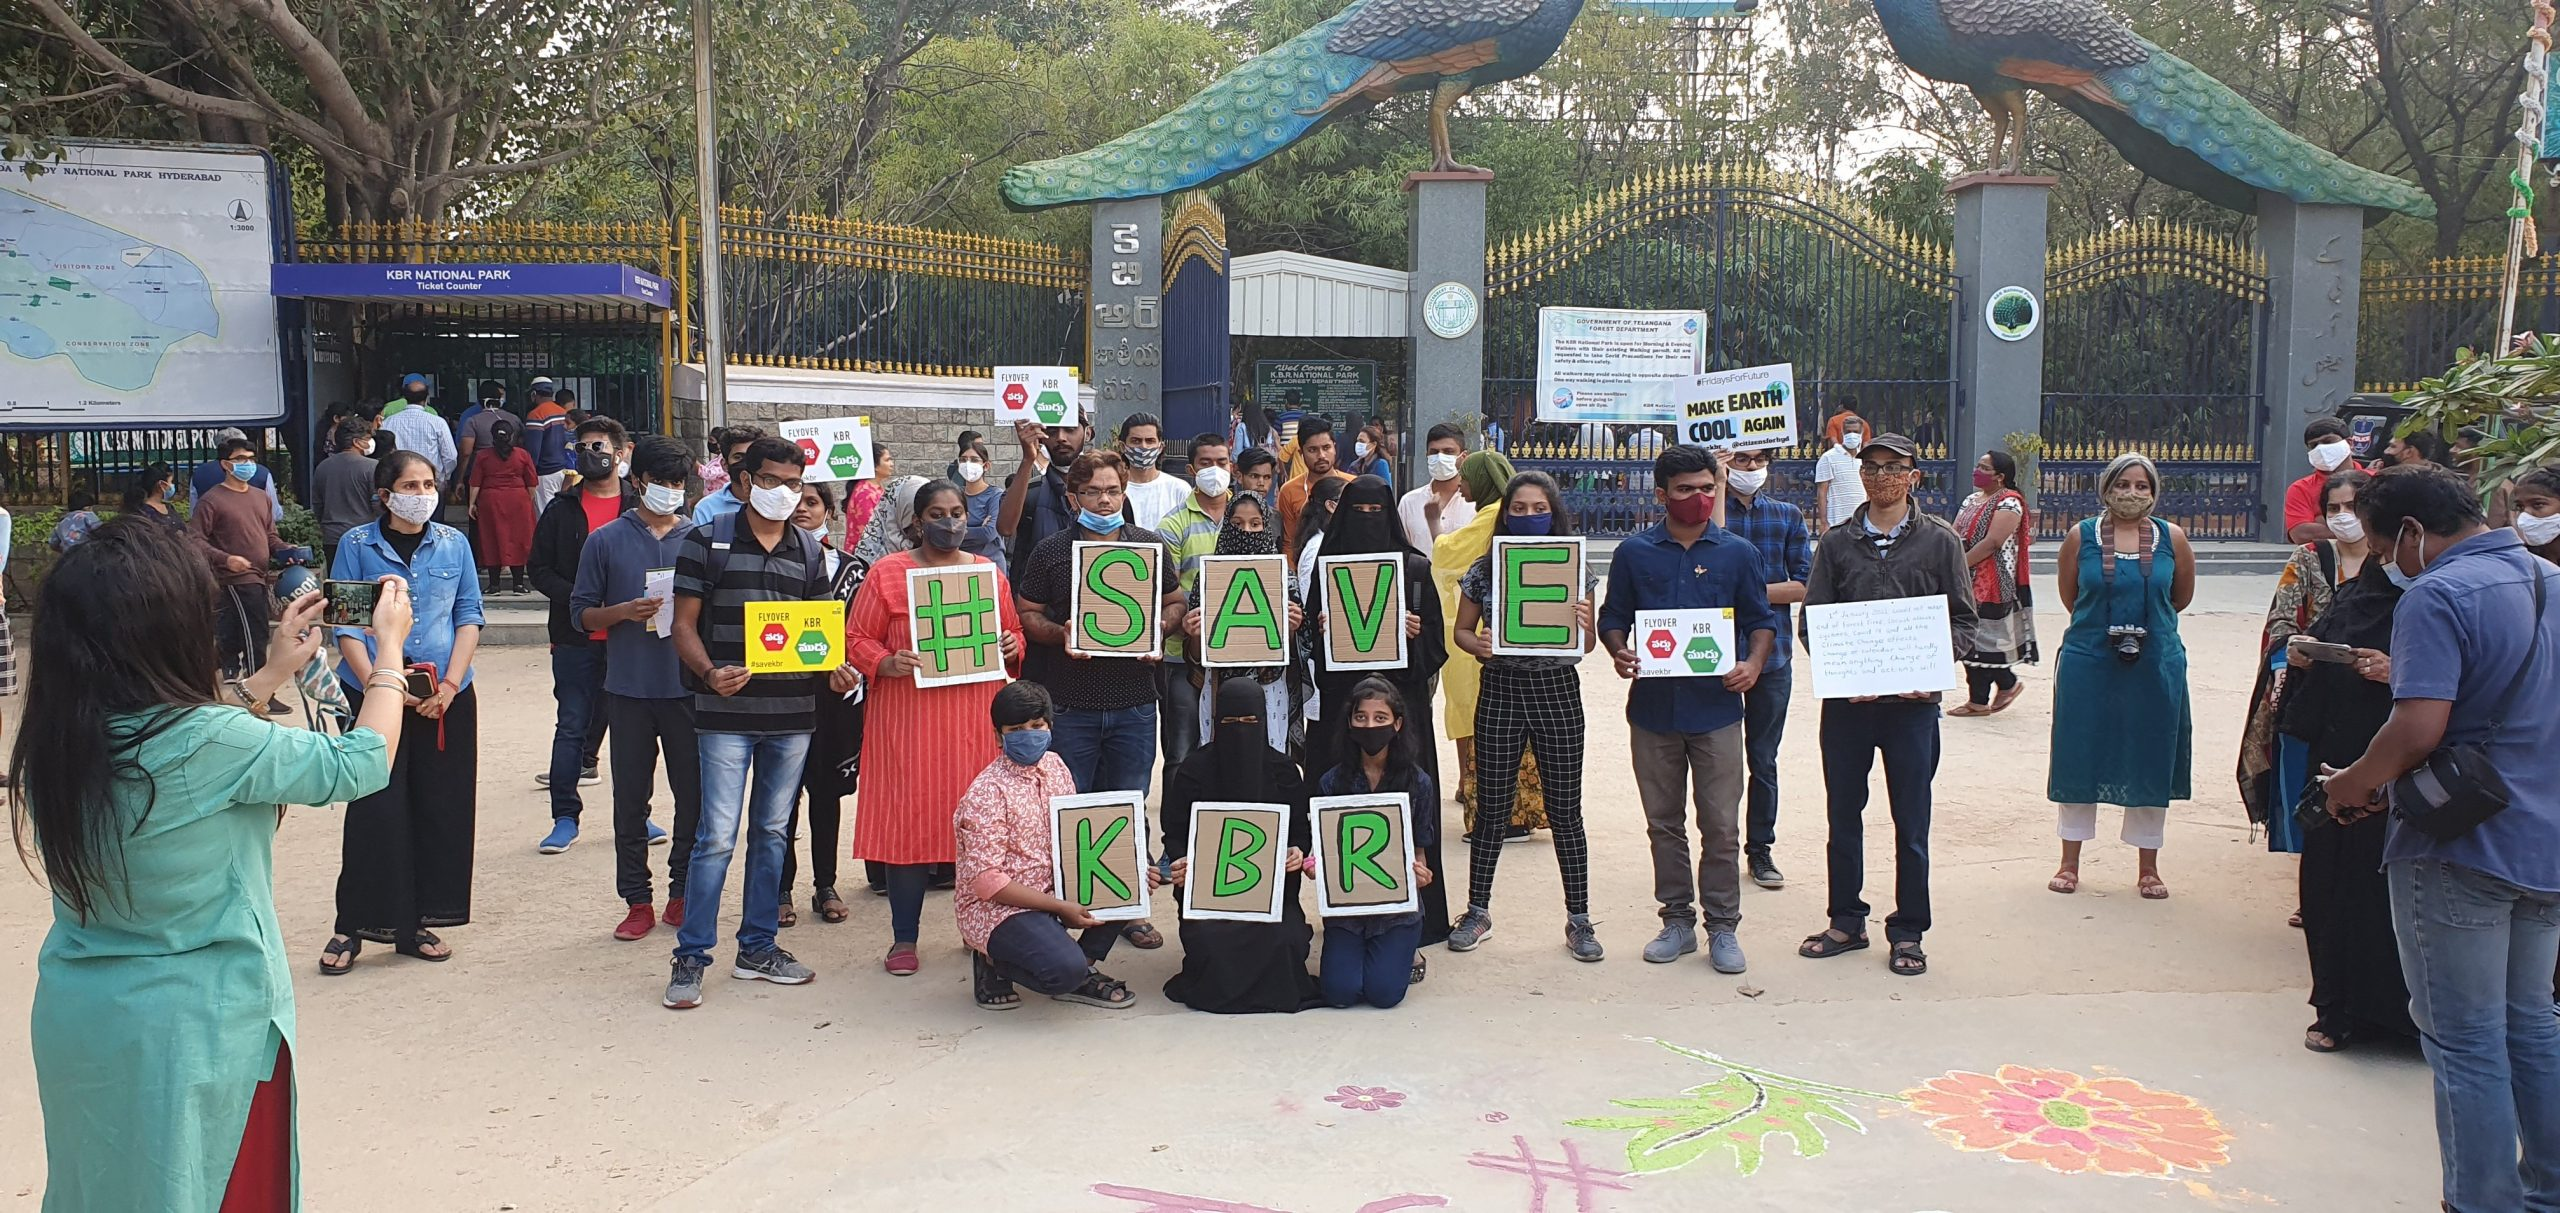 Activists stood with Save KBR spelt in signs.